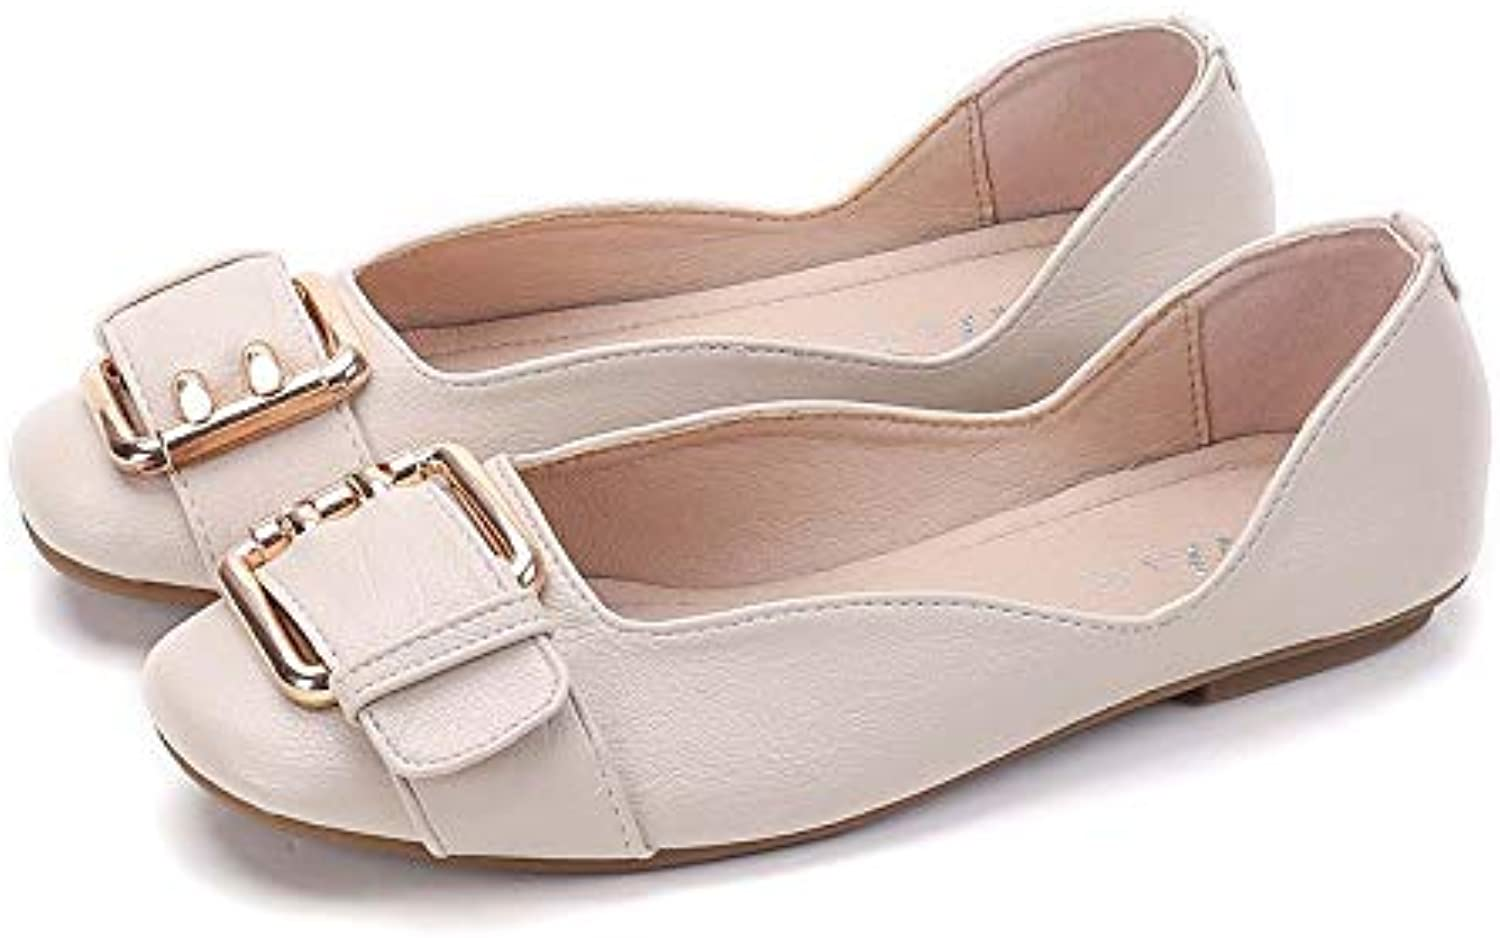 Meimeioo Womens Square Toe Slip On Ballet Flats Ballerina Flat Dress shoes